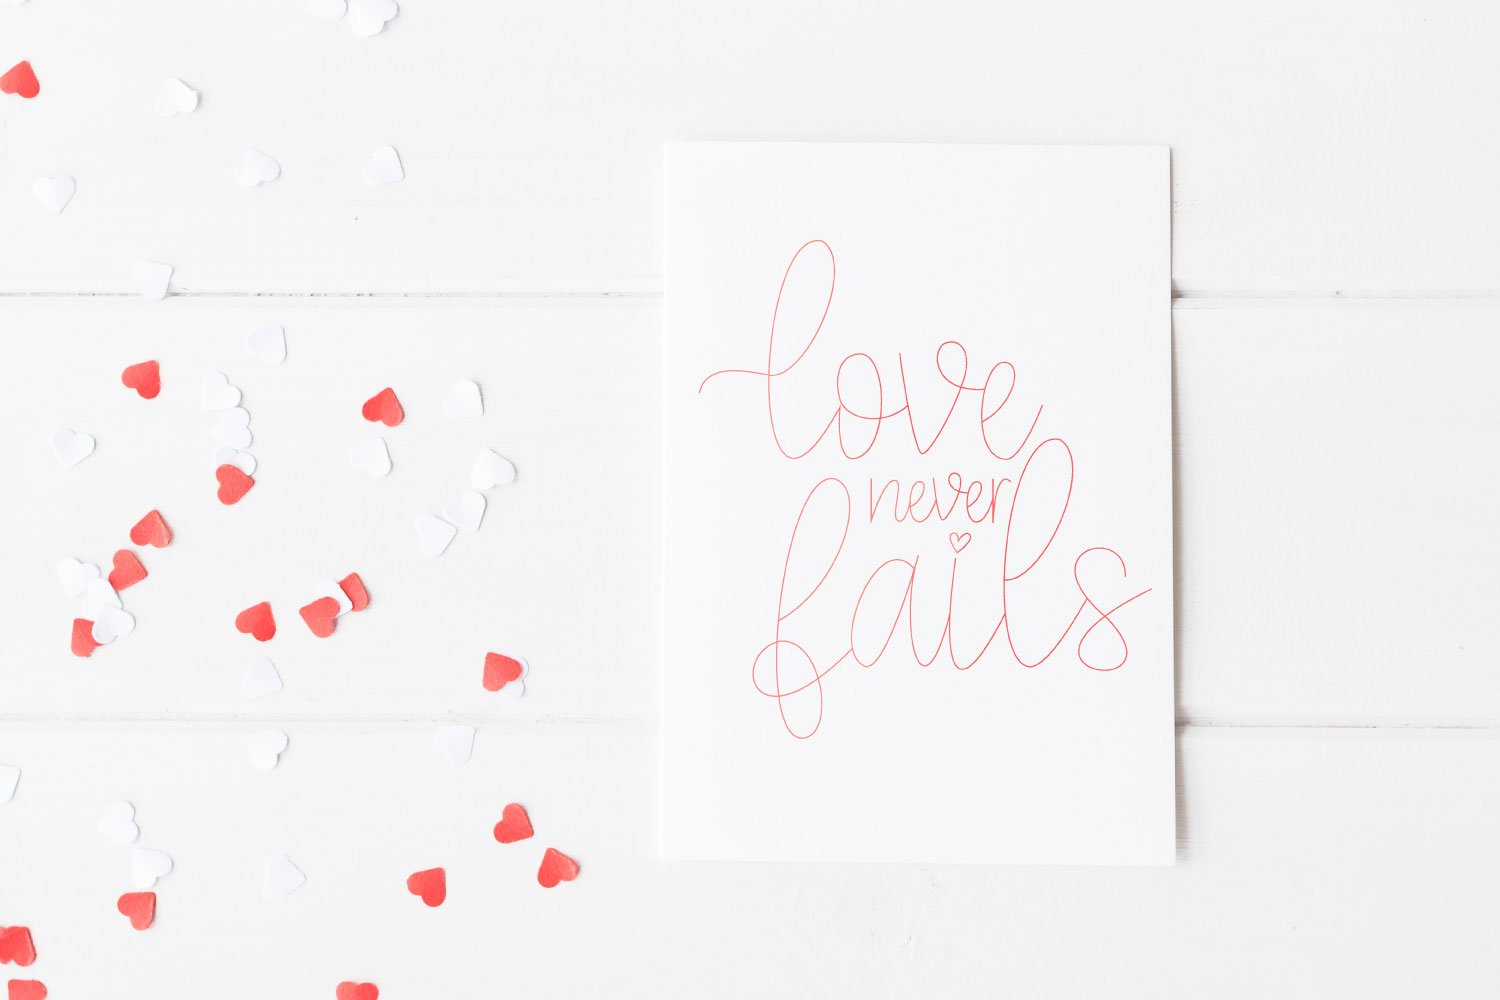 Love Never Fails foiled on a card.